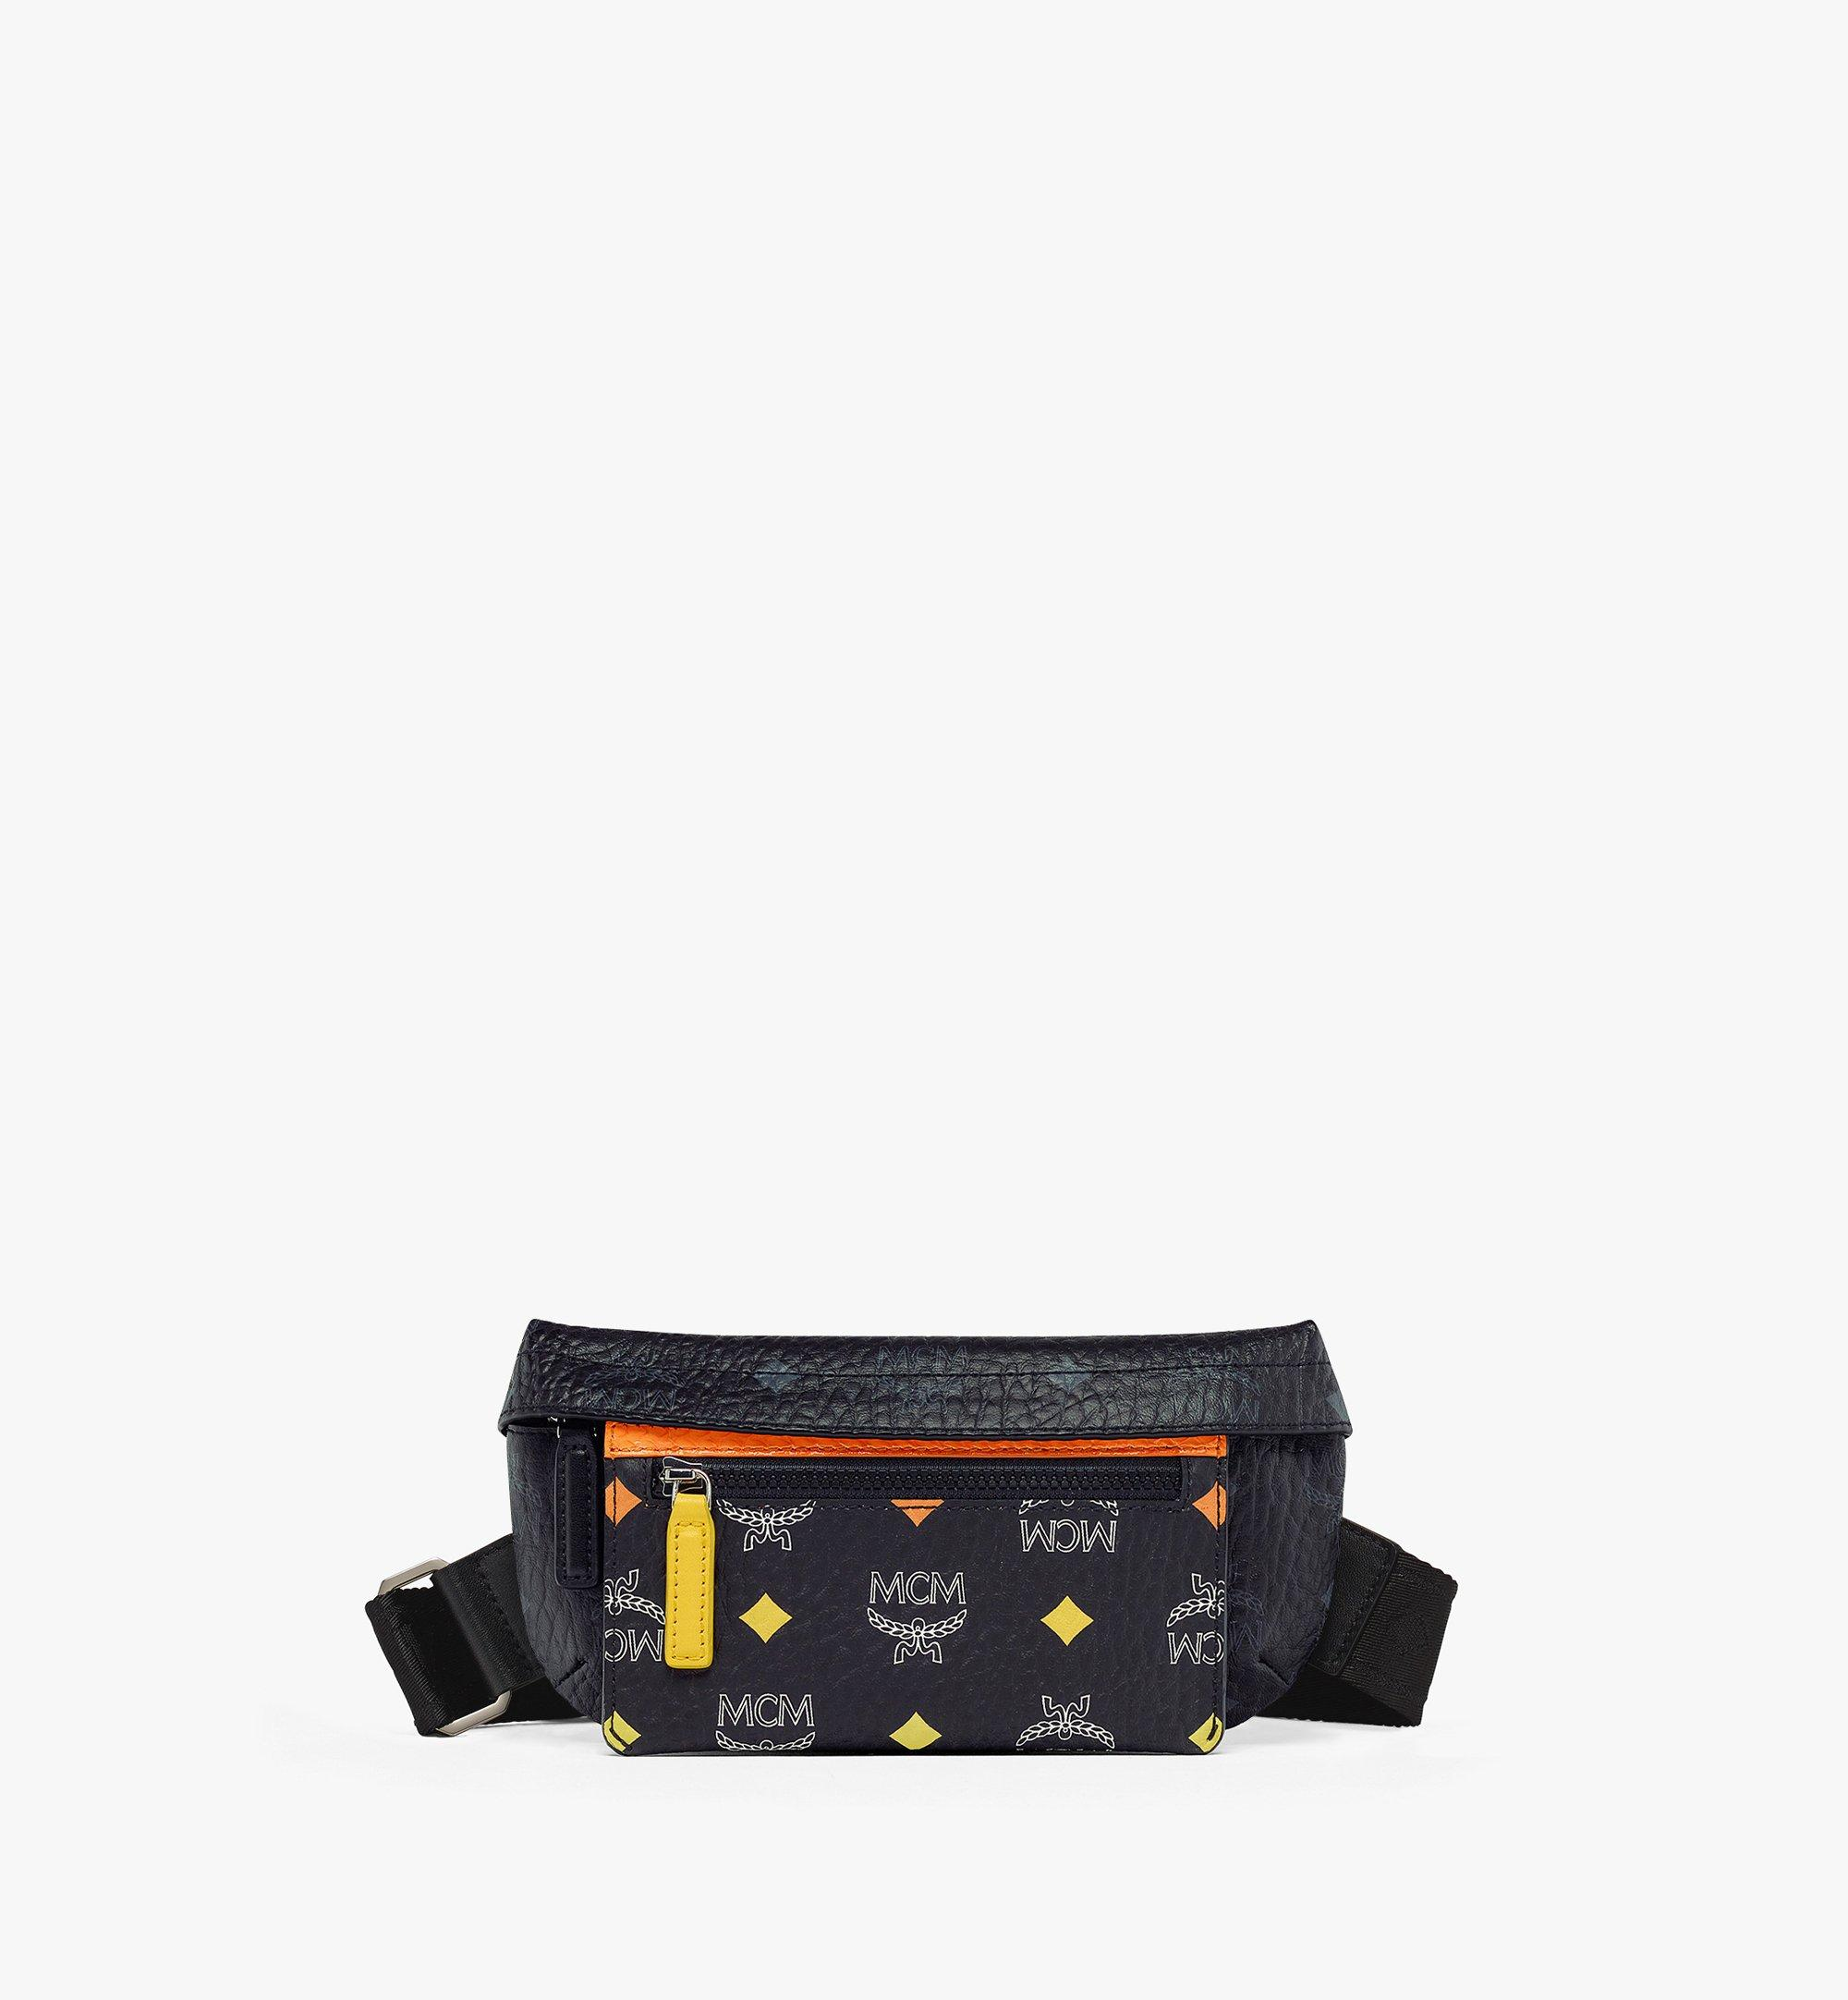 MCM Upcycling Project Crossbody in Visetos Black MMRBSUP01BK001 Alternate View 2